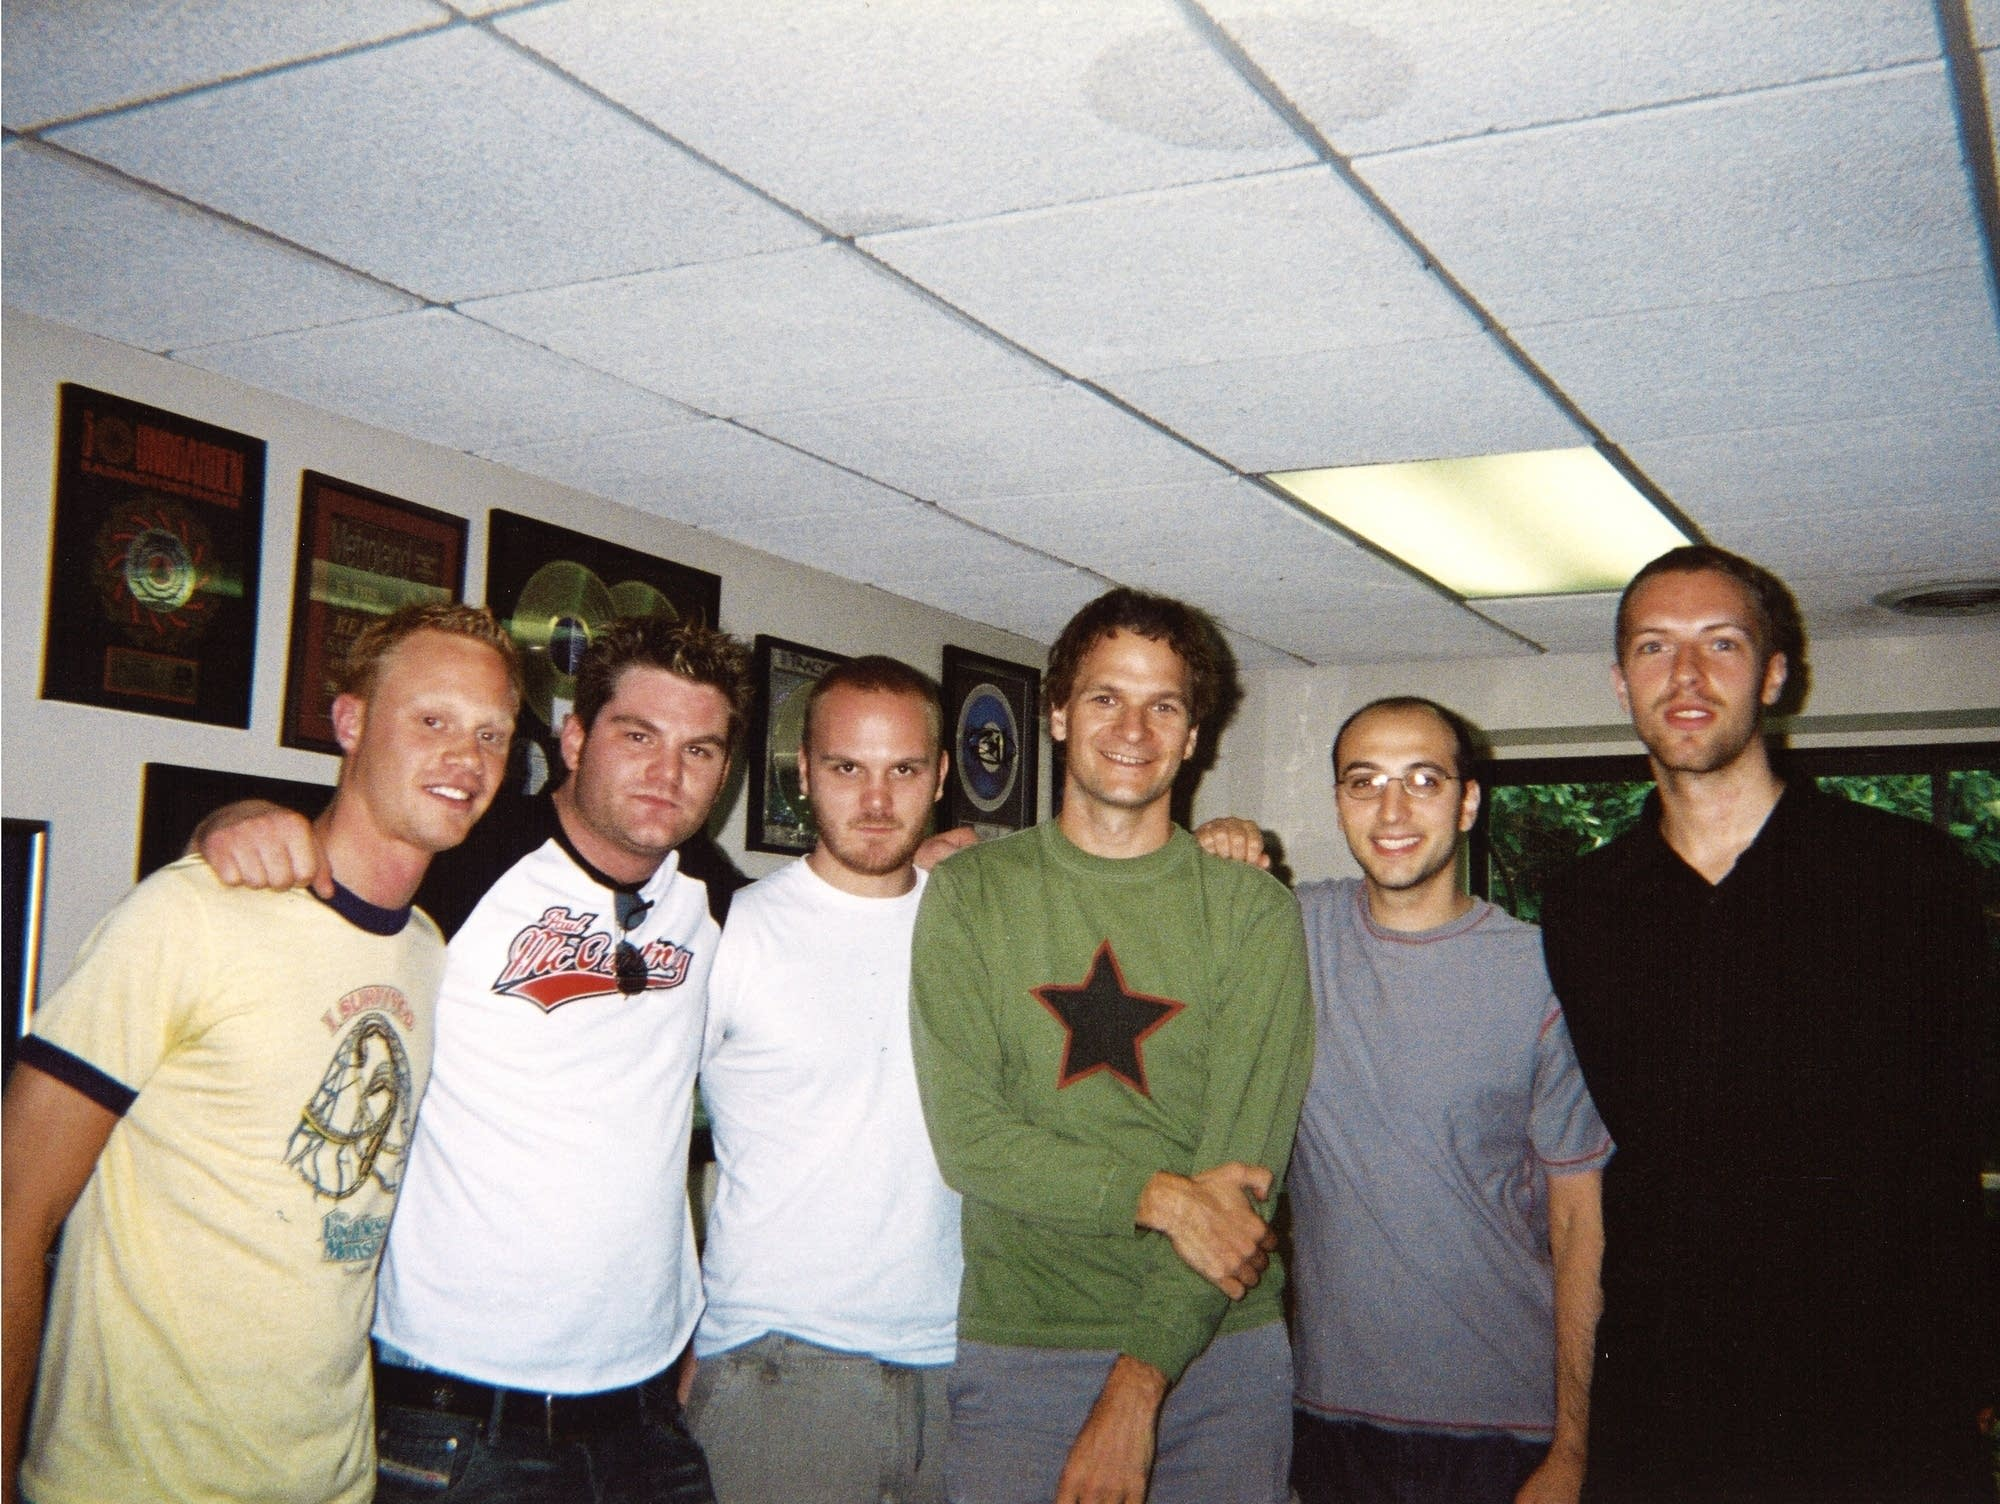 Program Director Jim McGuinn with Coldplay